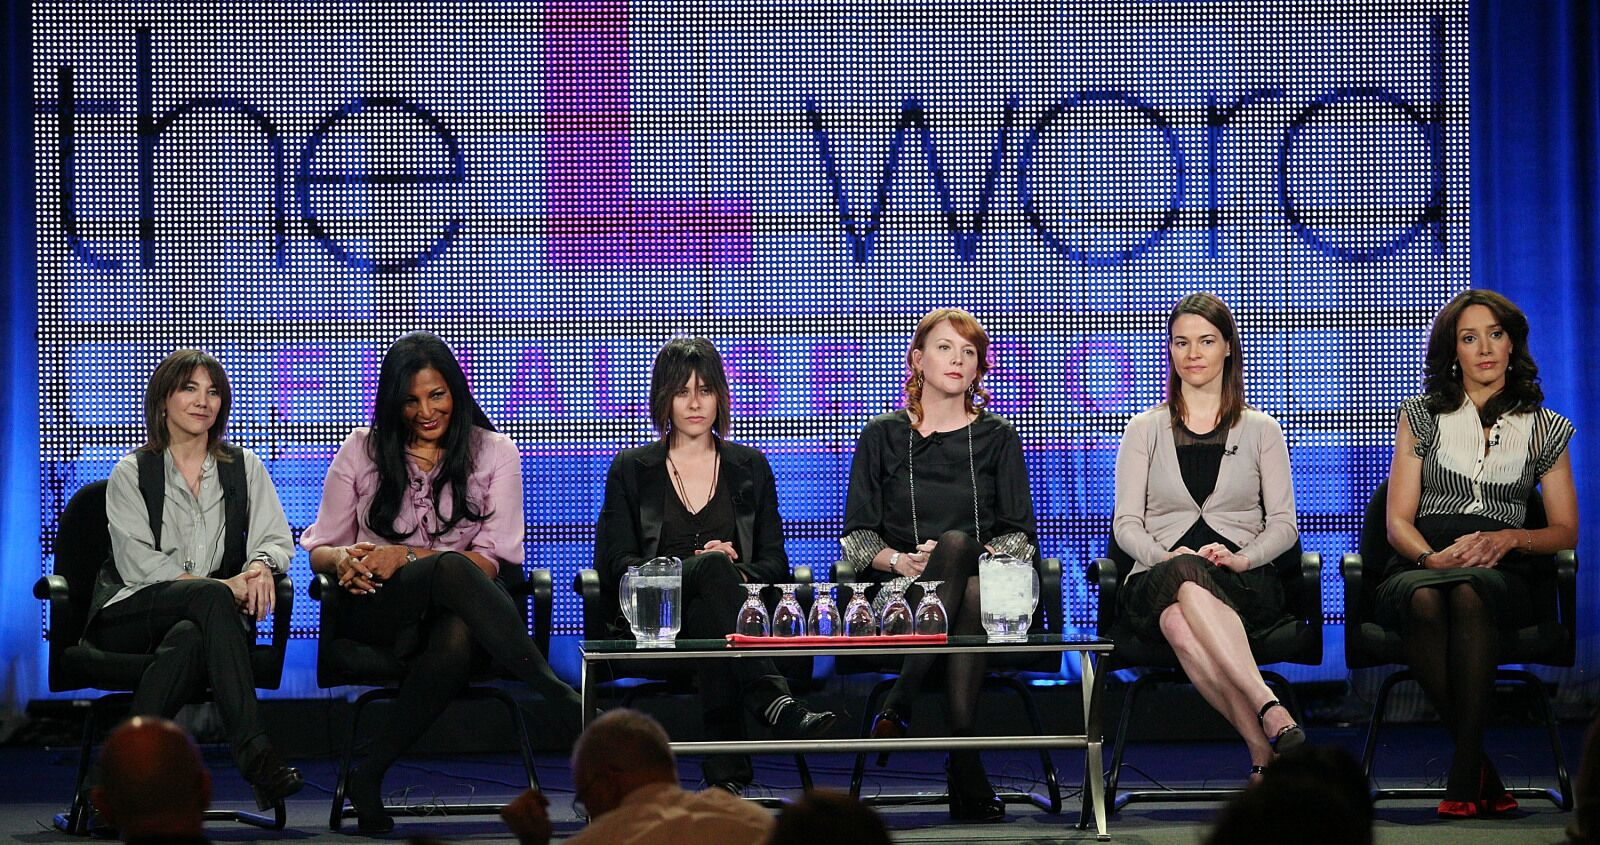 The L Word revival: What we can't wait to see when series returns